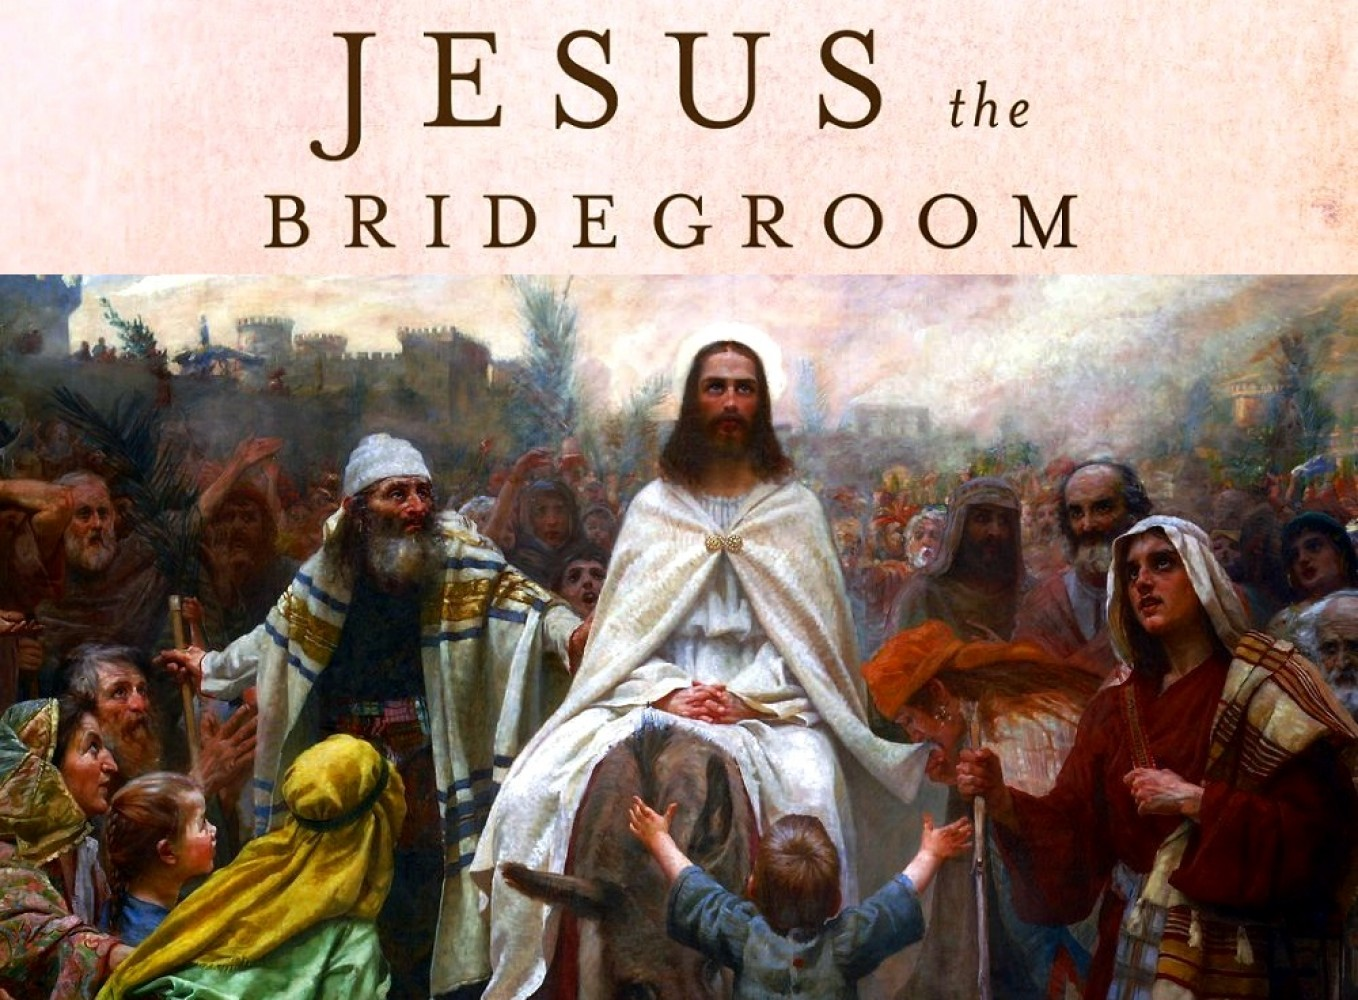 Christ the King: Bridegroom of the Daughter of Zion - John 12:12-19 / Pr. Ted Giese / Palm Sunday